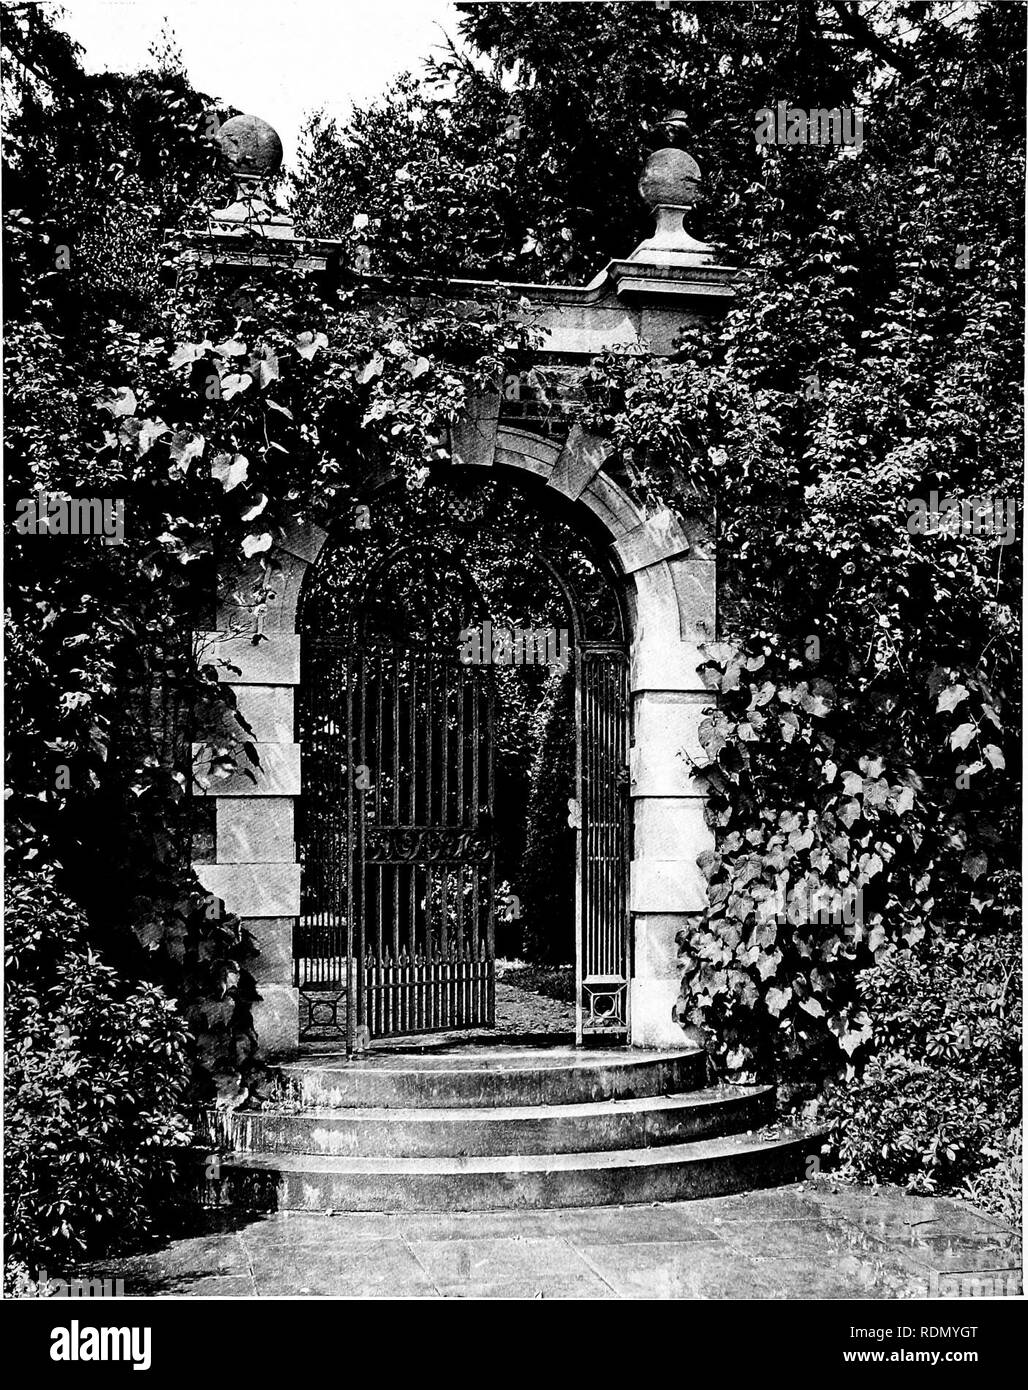 . Gardens for small country houses. Gardens. 114 Gardens for Small Country Houses.. FIG. 150. —STONE GATEWAY MODERATELY CLOTHED.. Please note that these images are extracted from scanned page images that may have been digitally enhanced for readability - coloration and appearance of these illustrations may not perfectly resemble the original work.. Jekyll, Gertrude, 1843-1932; Weaver, Lawrence, Sir, 1876-. London, Country Life [etc. ]; New York, C. Scribner's Sons - Stock Image